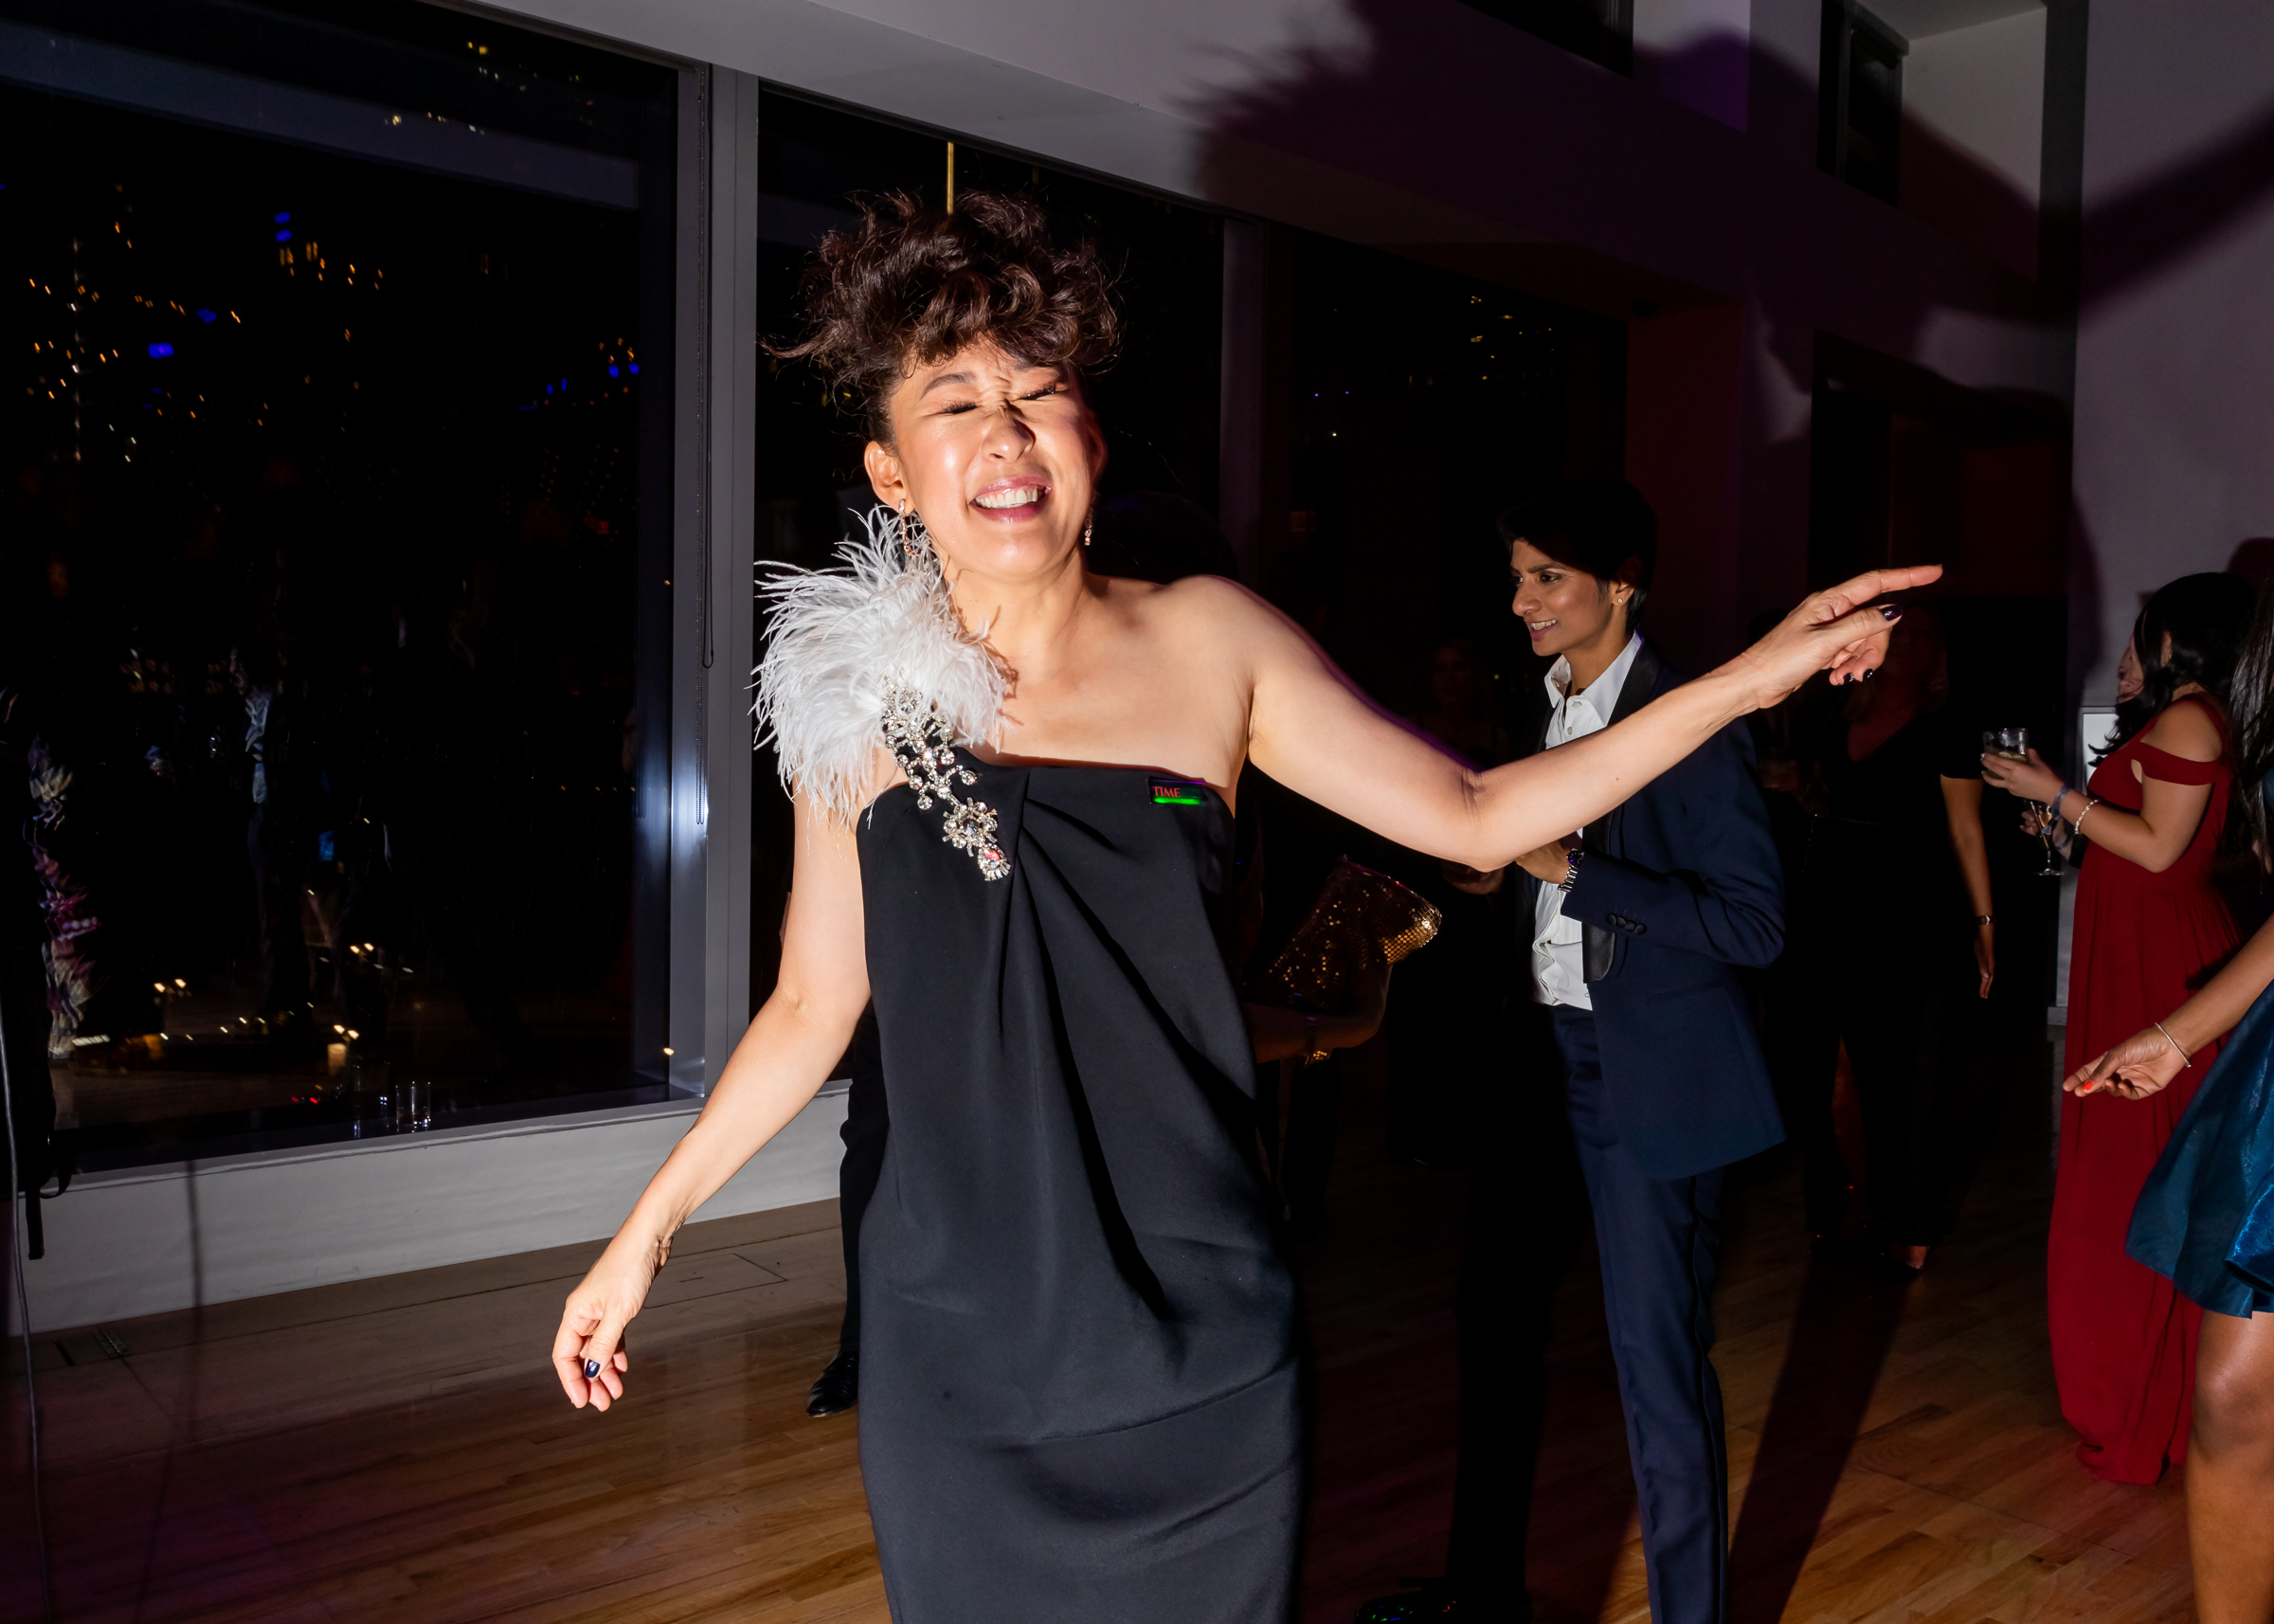 Sandra Oh at the Time 100 Gala at Jazz at Lincoln Center in New York City on April 23, 2019.